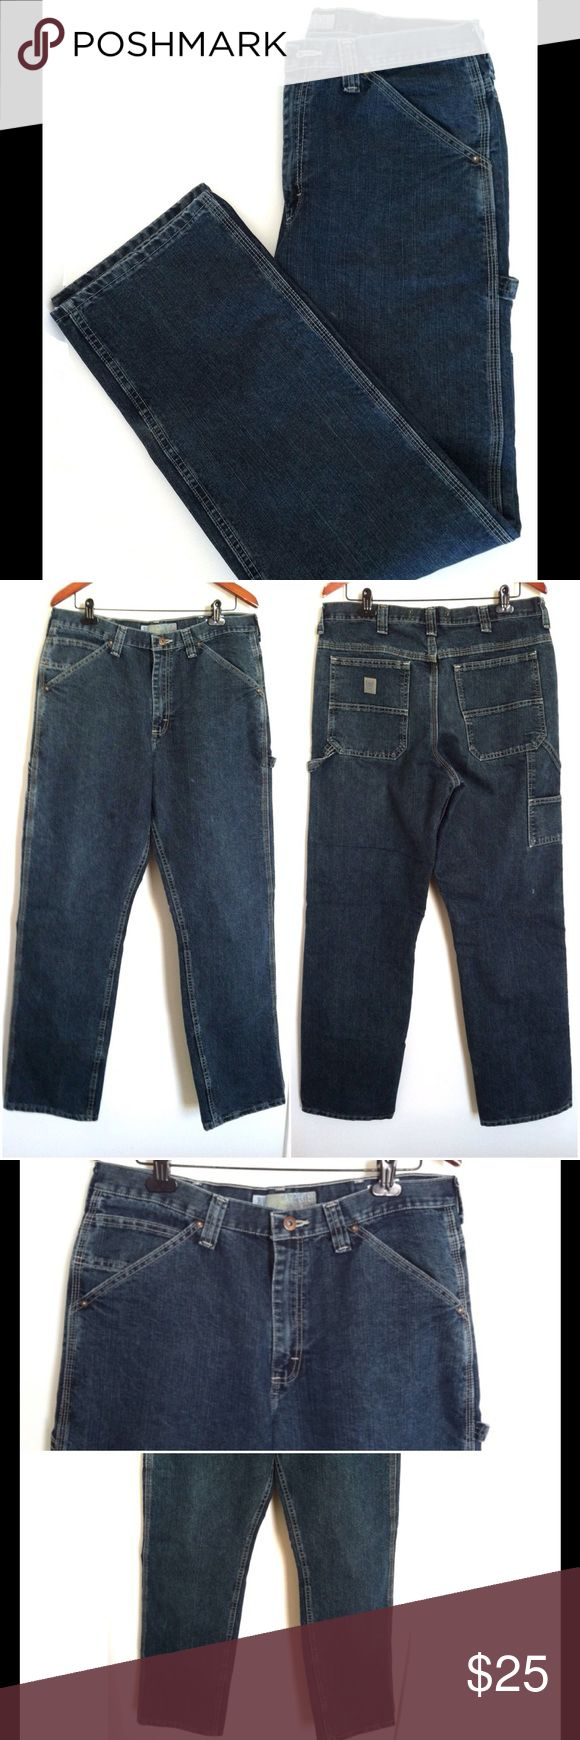 👖Lee Dungarees Carpenter Men's Jeans, Size 36x34 ✔️ Lee Dungarees Men's Jeans ✔️ Size: 36x34 ✔️ Color: Dark Denim ✔️ Style: Carpenter ✔️ Relaxed fit ✔️ Excellent condition.  Like New!  If you have any other questions, don't hesitate to ask below 📥 Lee Jeans Relaxed